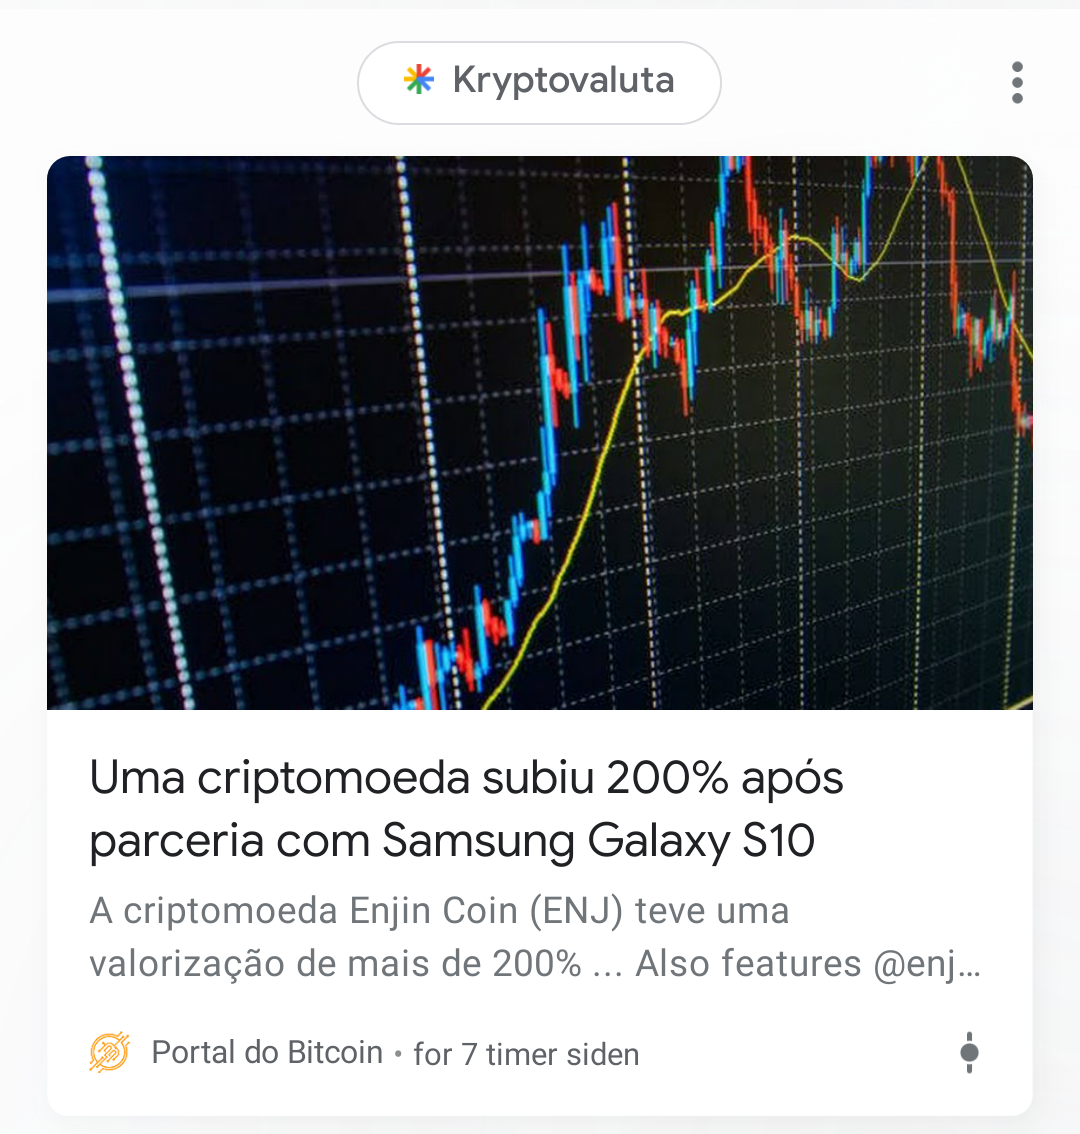 Google overestimating my language skills (and my interest for crypto currencies), Portugese edition